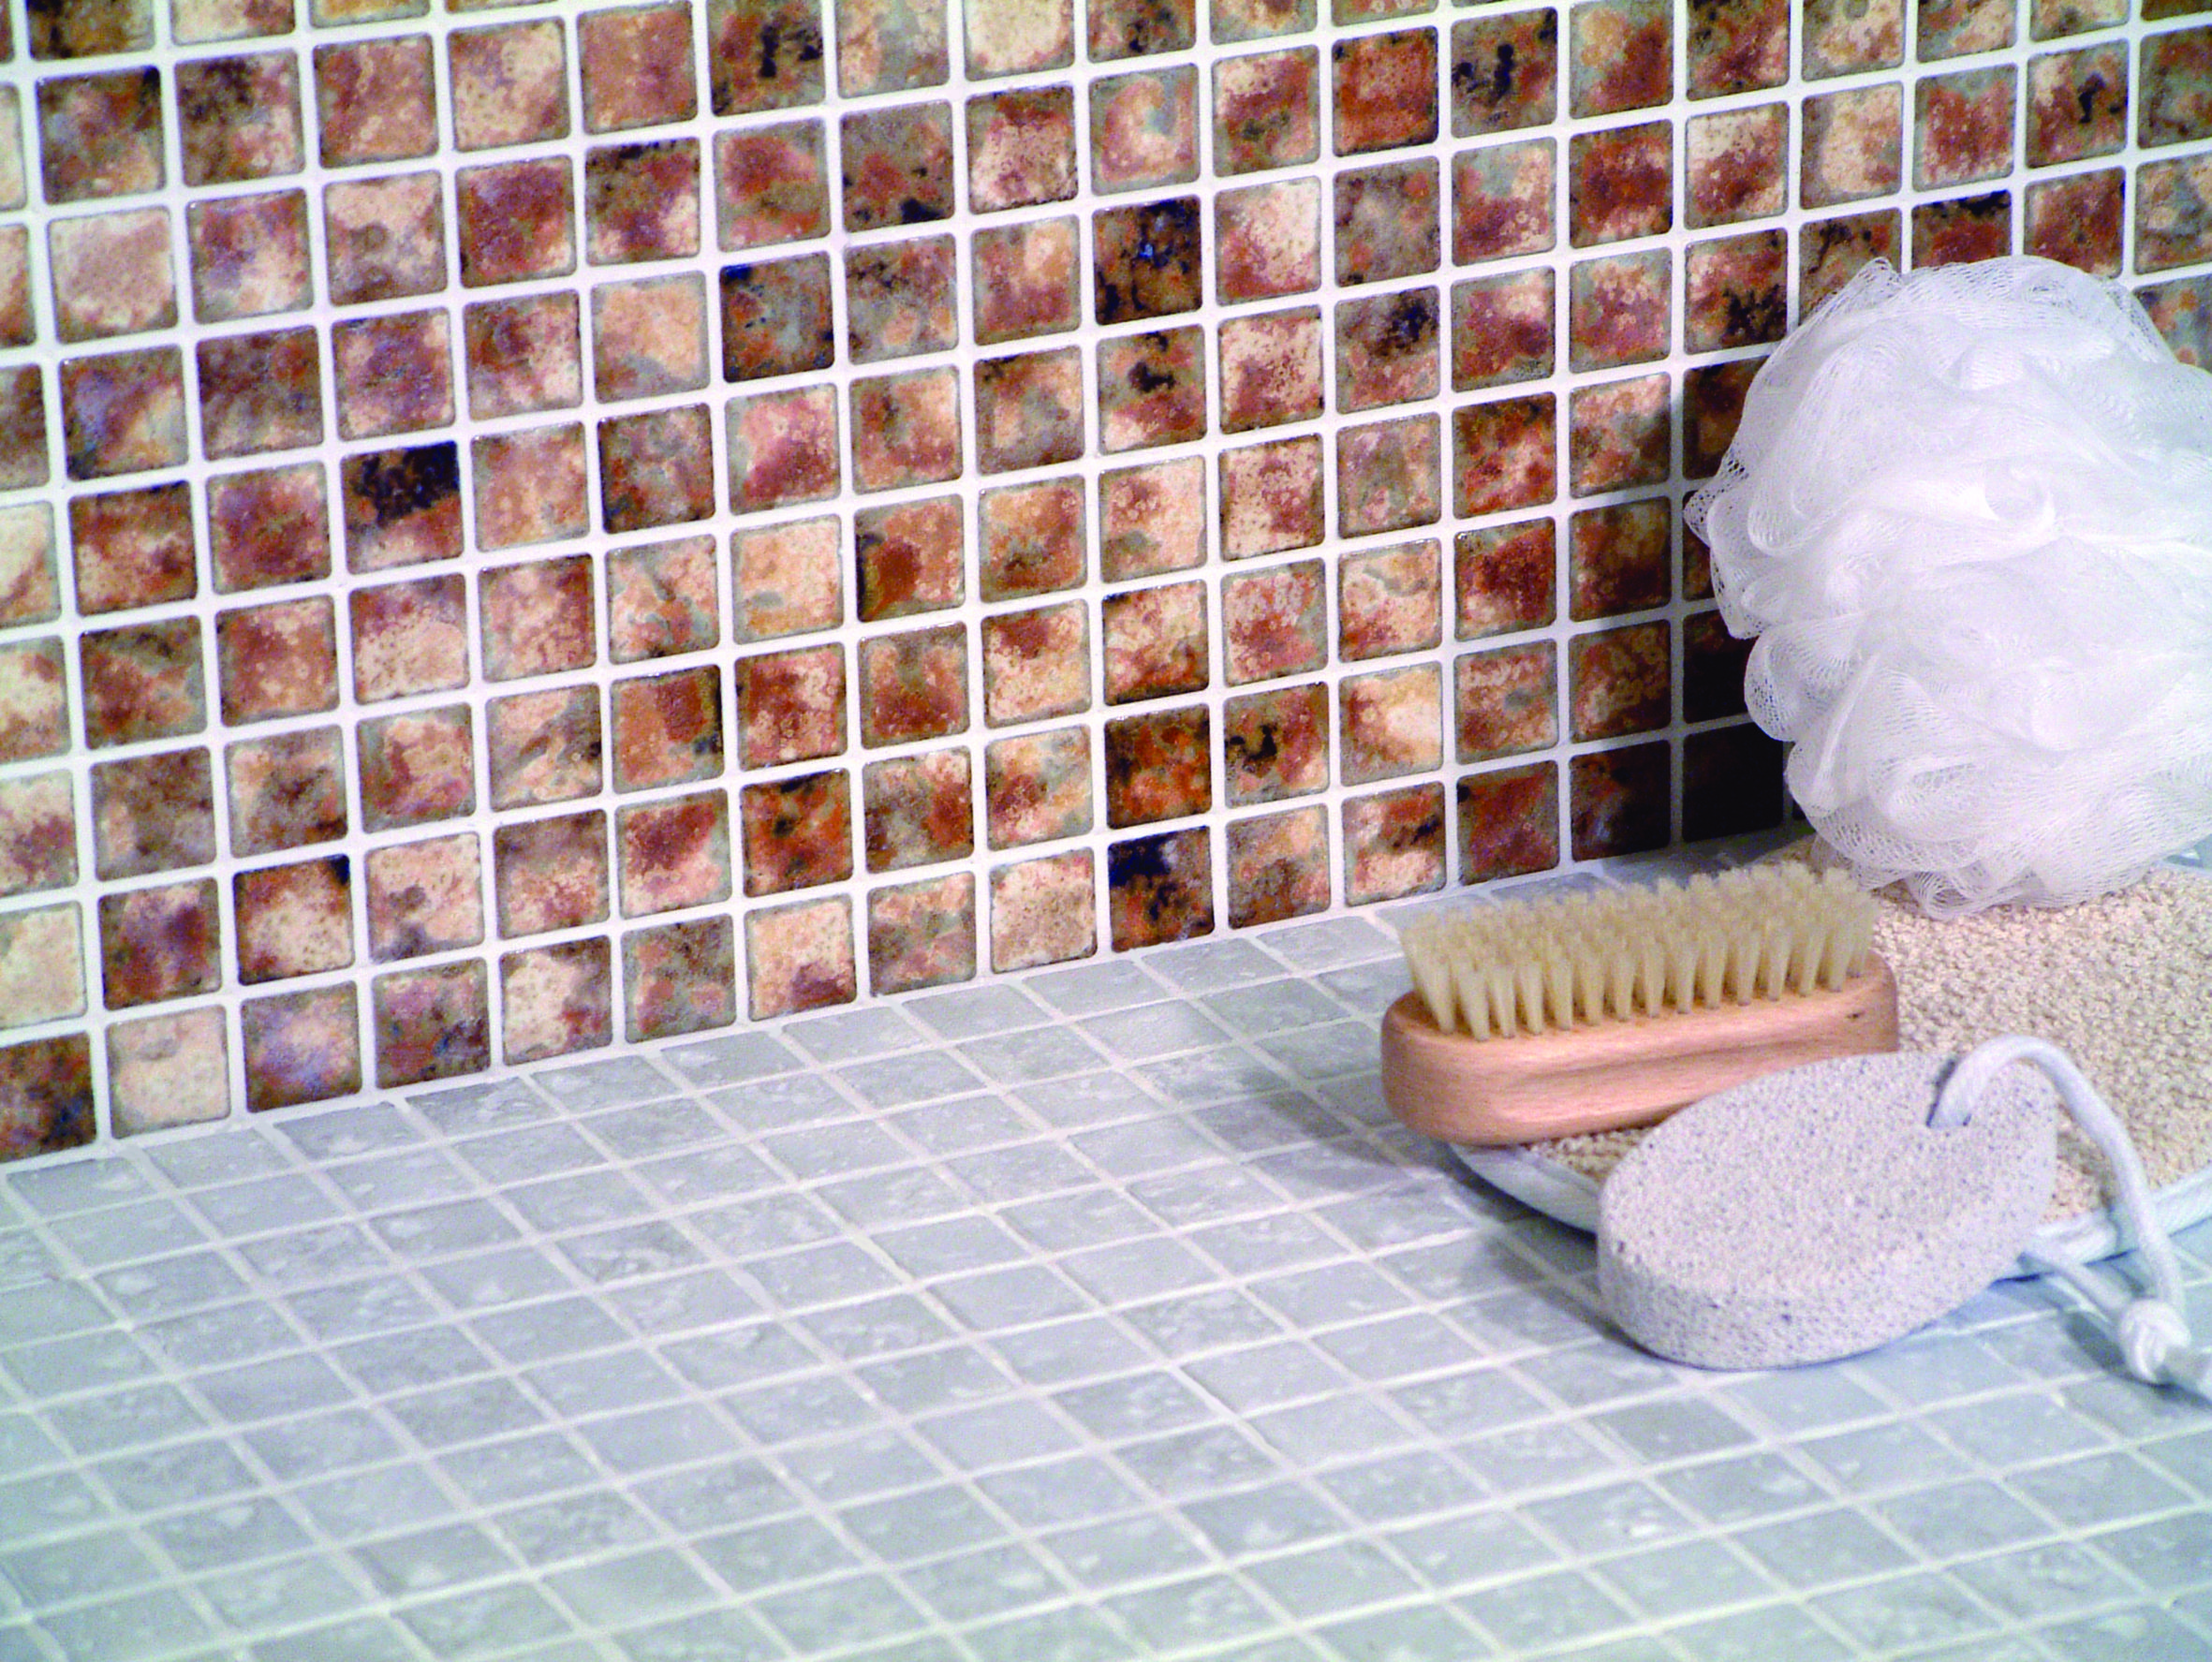 Rustica is a vitrified glazed ceramic mosaic available in a range of waxman ceramics ltd are leading suppliers of quality ceramicporcelain tiles and mosaics to trade and retail throughout the uk dailygadgetfo Image collections